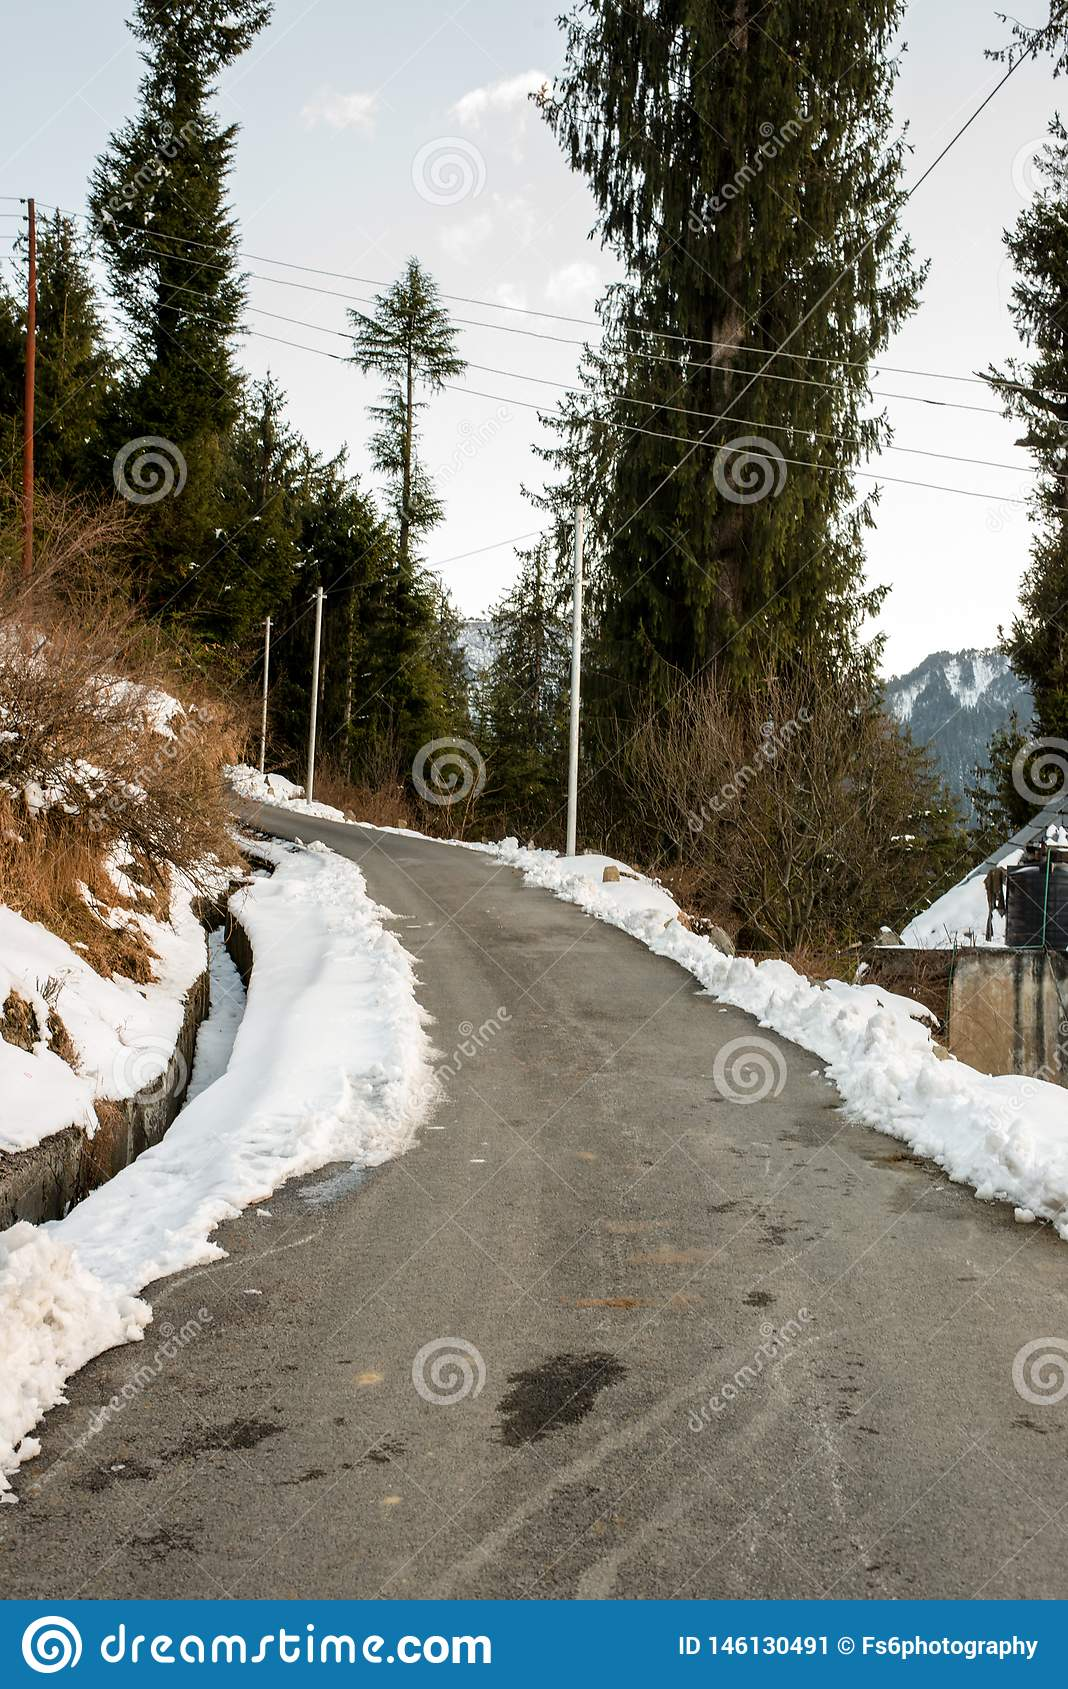 Open Road In Winter Season In Himalayas - India Stock Image